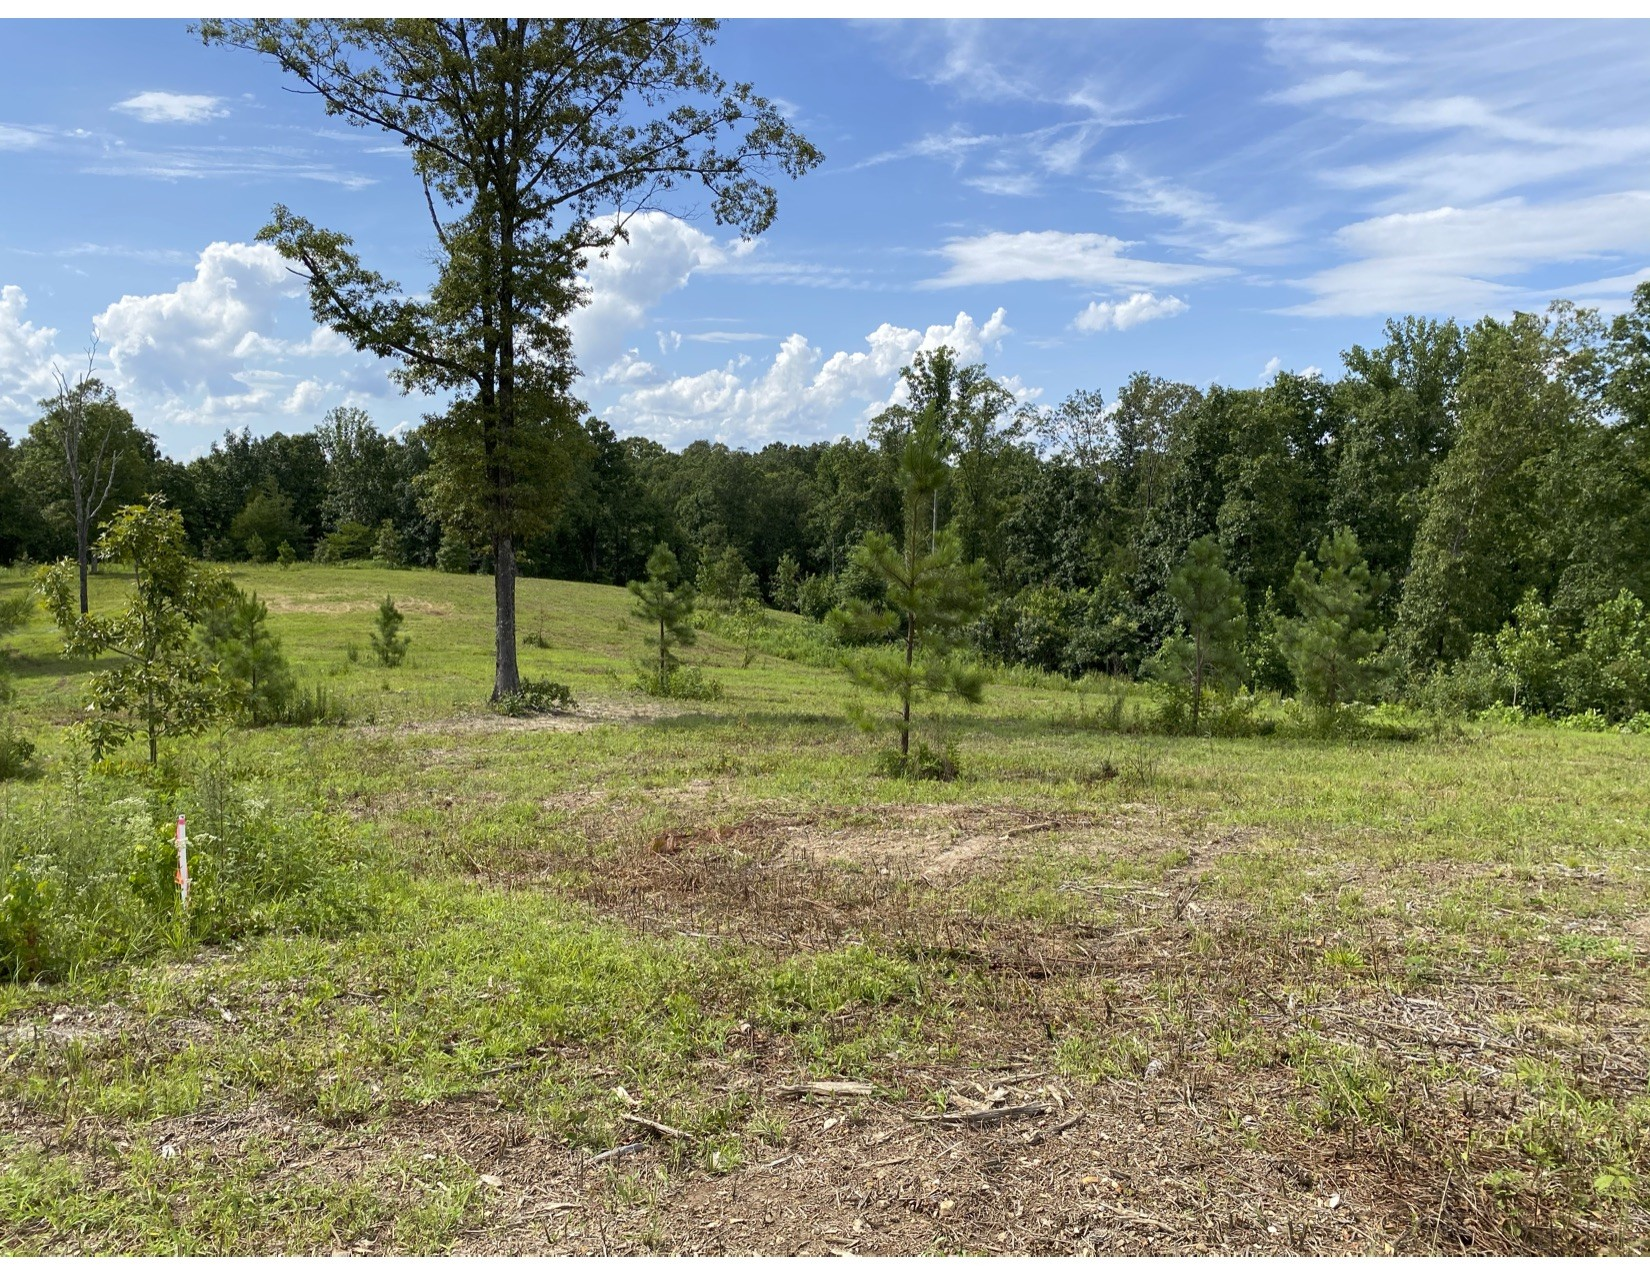 0 Vaughn lane Track 2 Property Photo - Lyles, TN real estate listing